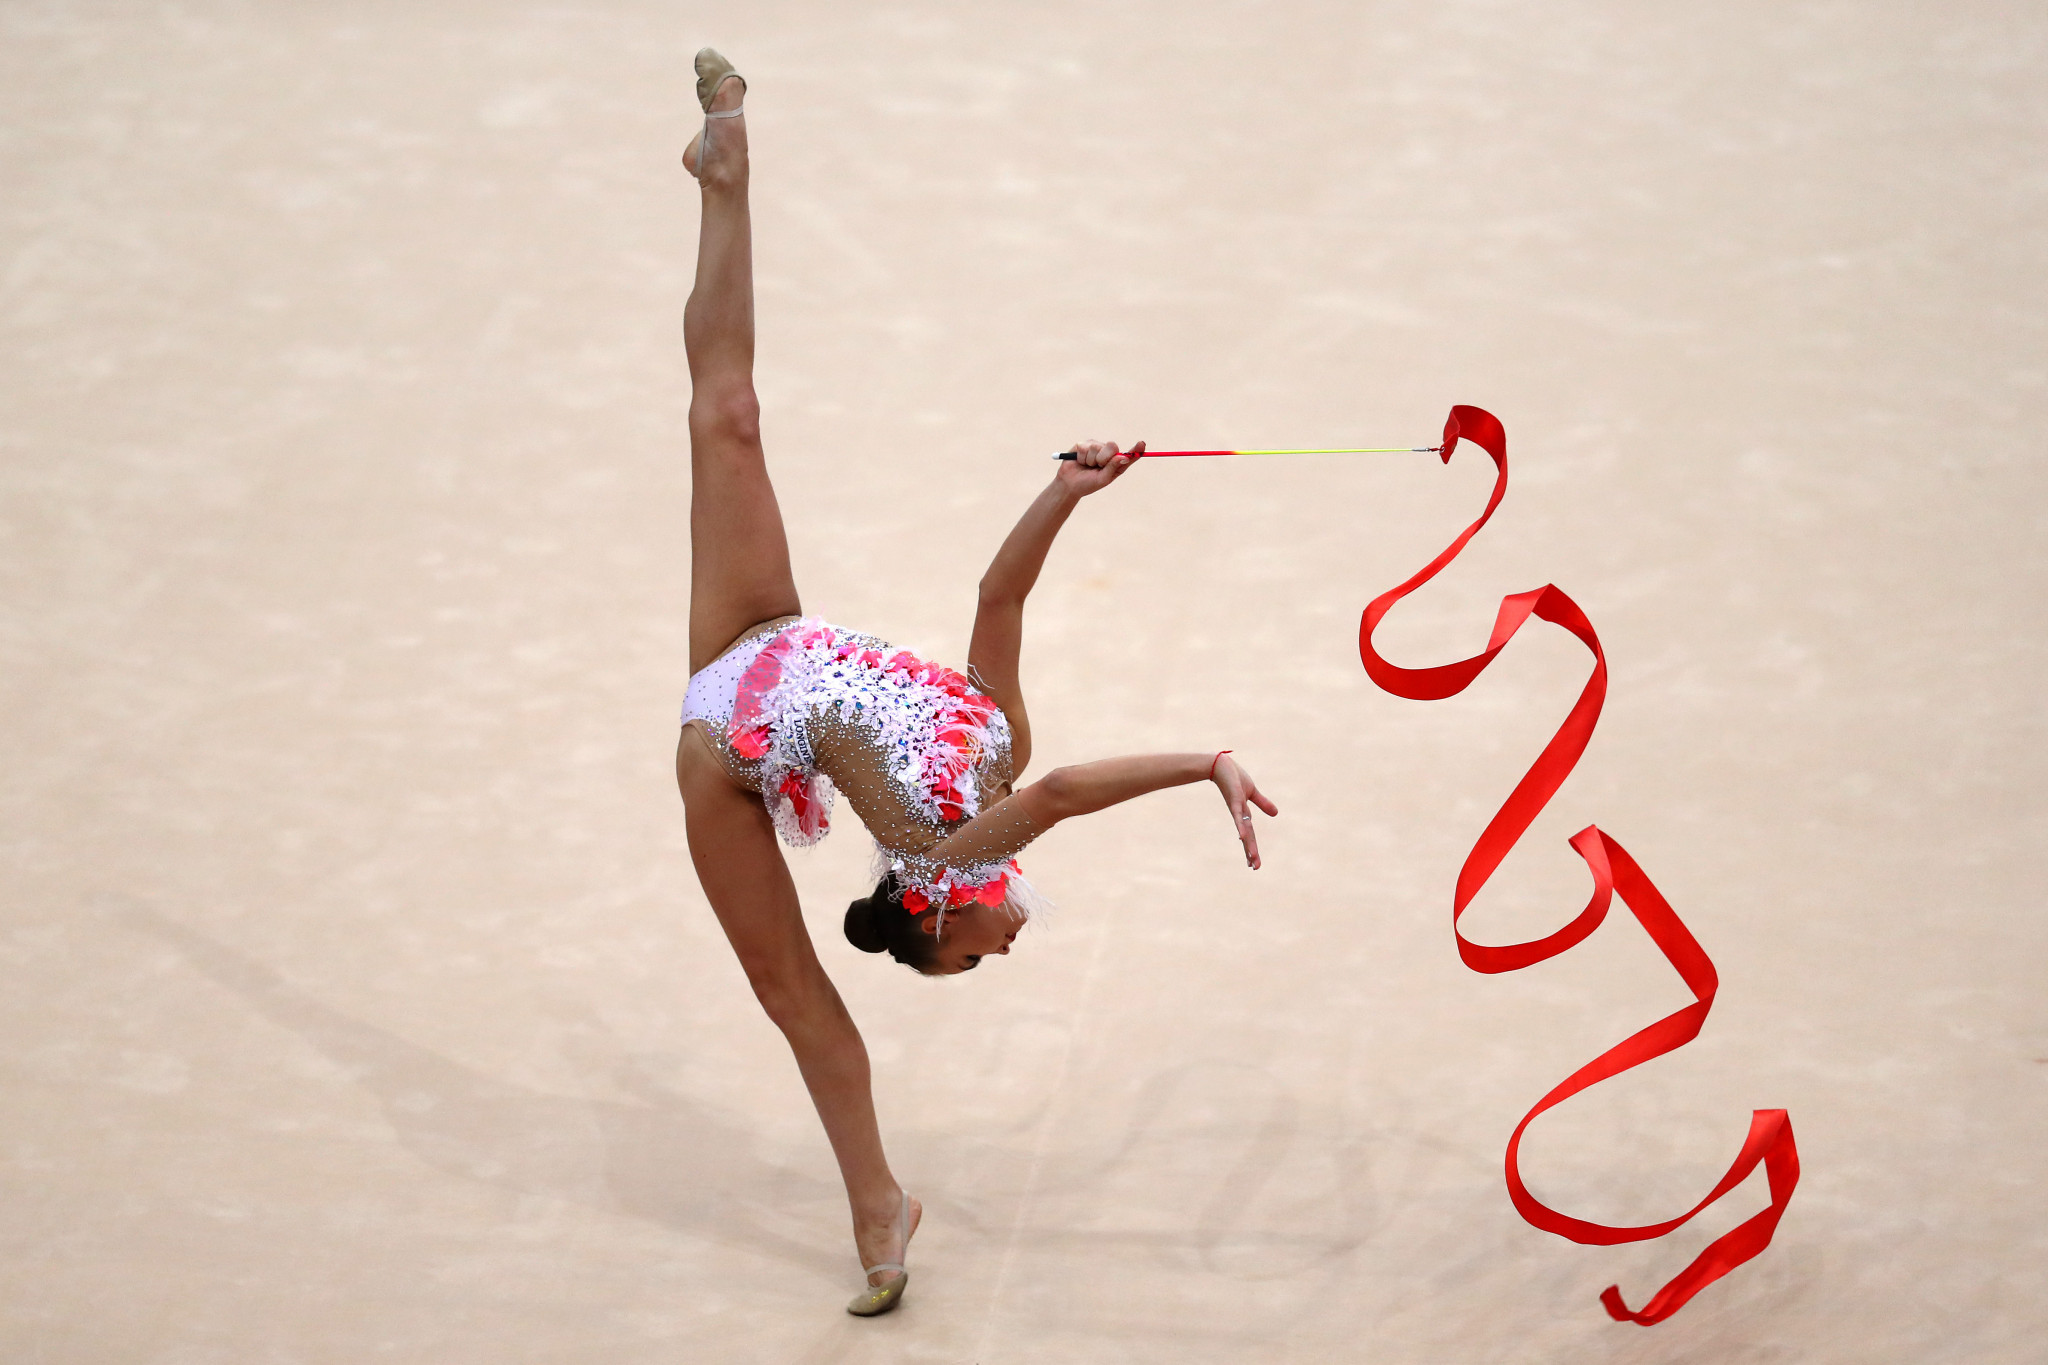 Russia's Dina Averina earned two more gold European Games medals, the first coming in the women's ribbon ©Minsk 2019